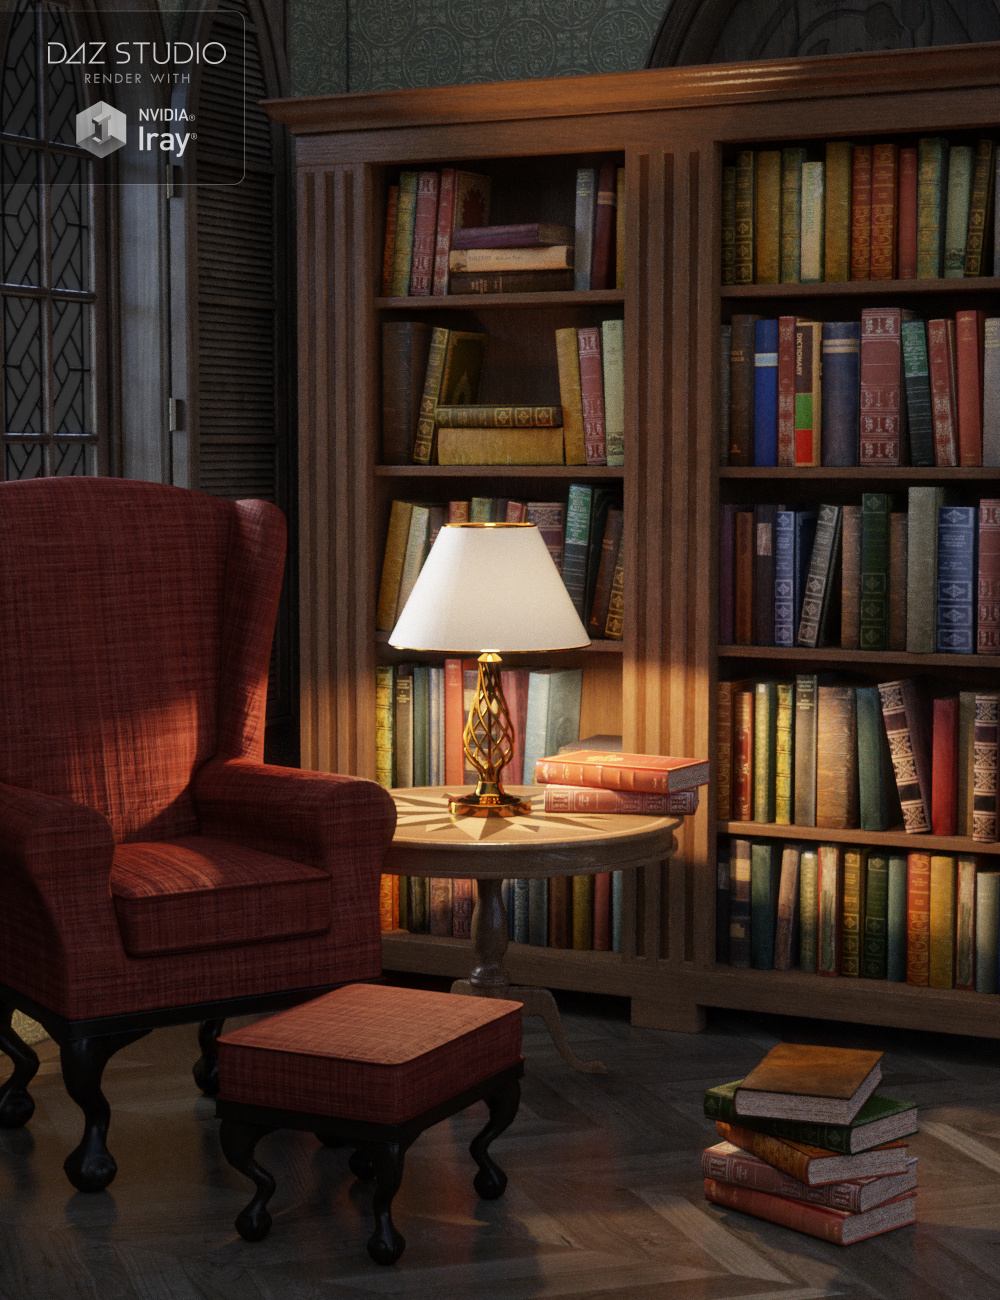 Reading Corner by: Merlin Studios, 3D Models by Daz 3D